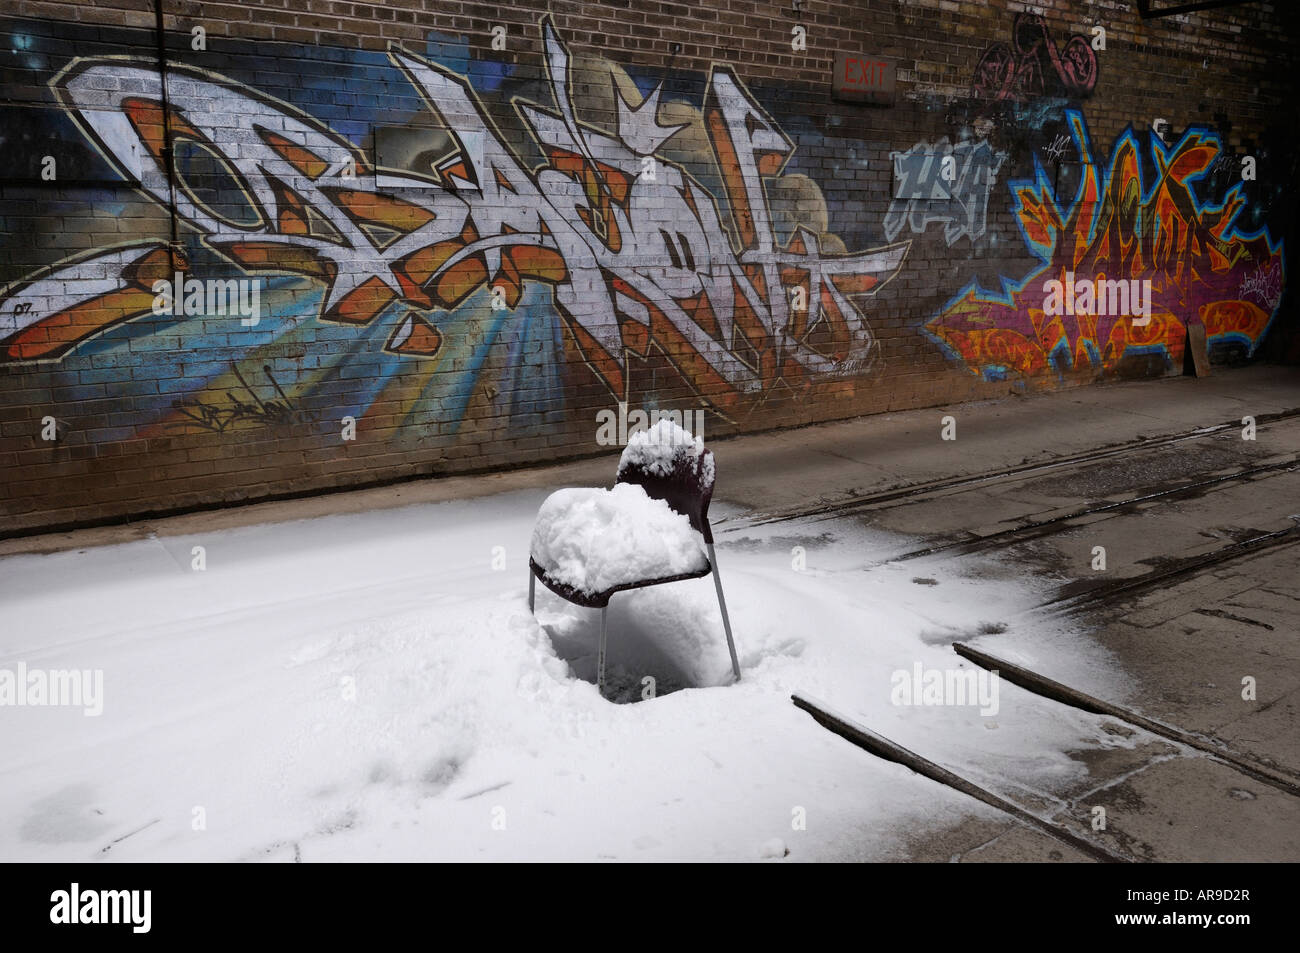 Snow Covered Chair With Graffiti At Don Valley Brickworks Plant Toronto